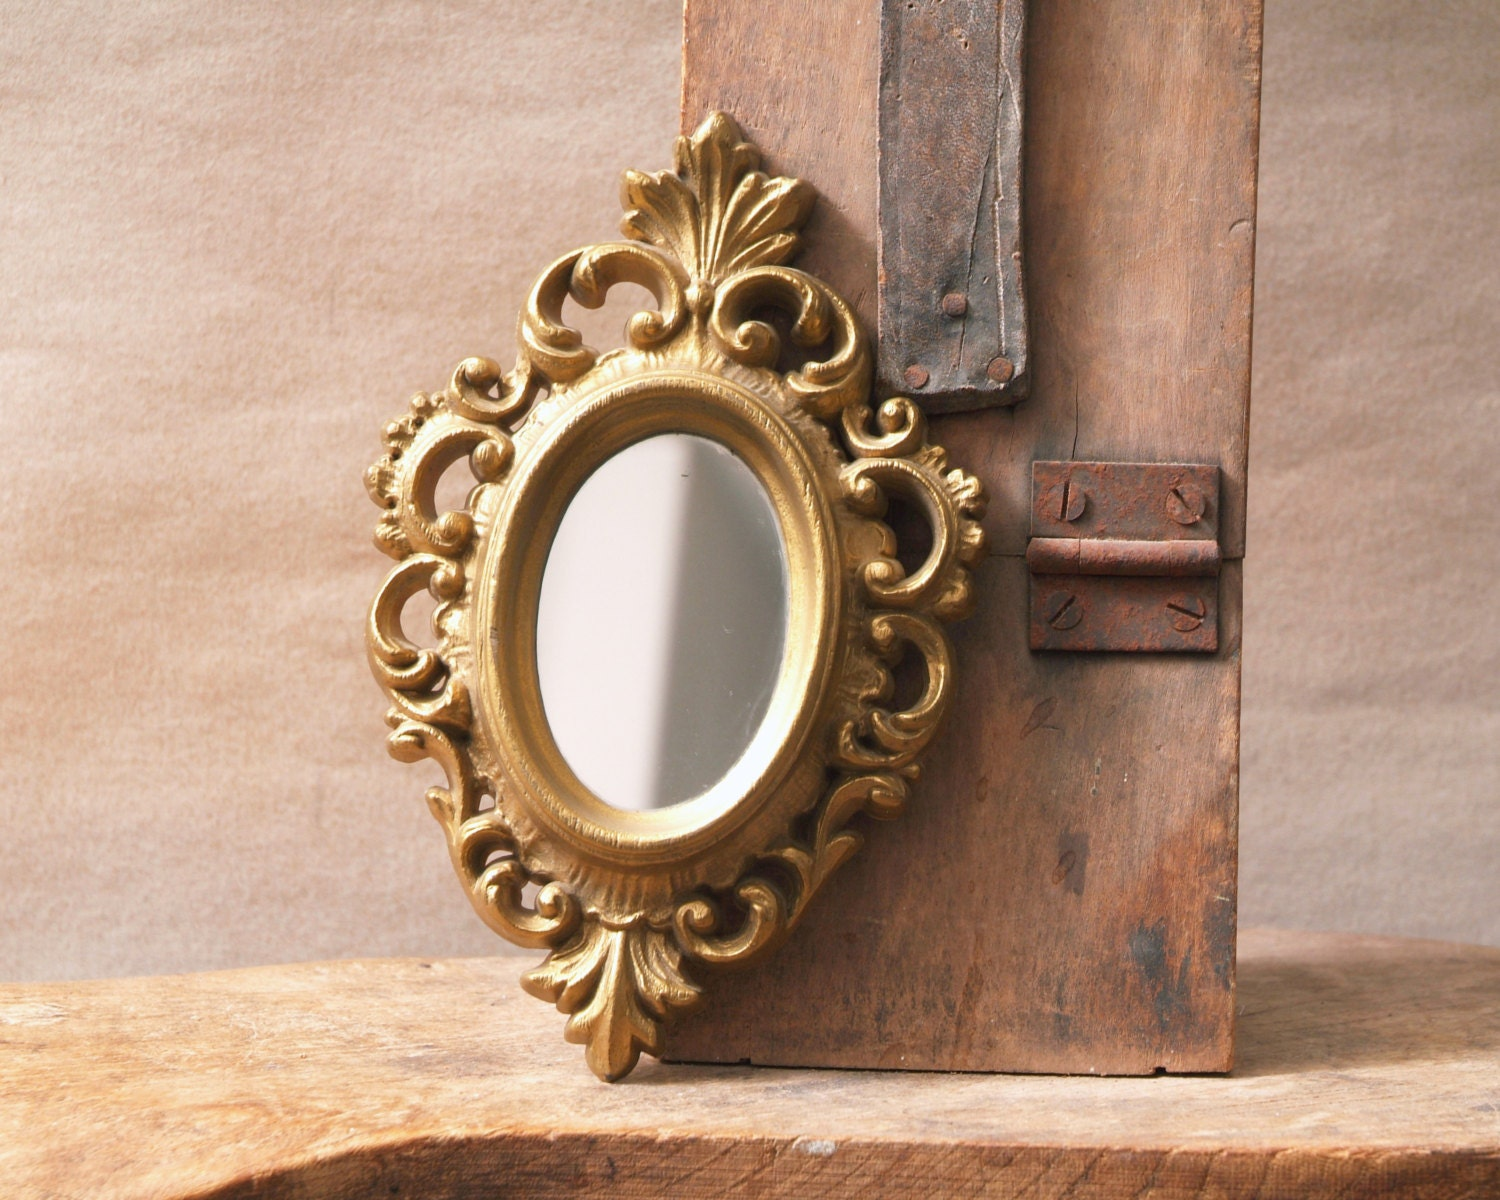 Vintage gold framed mirror small oval mirror ornate gold for Small gold framed mirrors